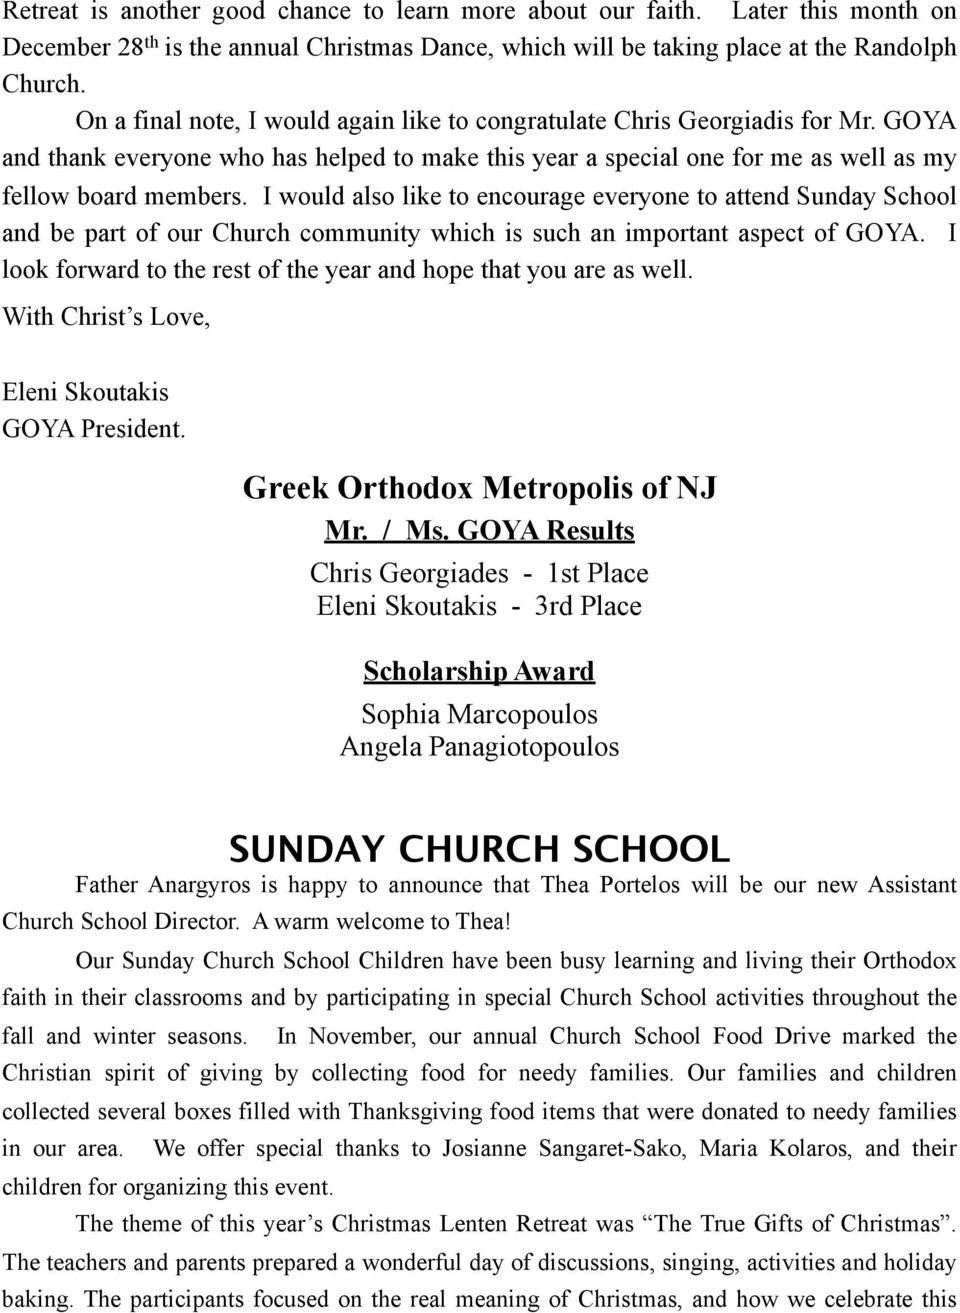 I would also like to encourage everyone to attend Sunday School and be part of our Church community which is such an important aspect of GOYA.